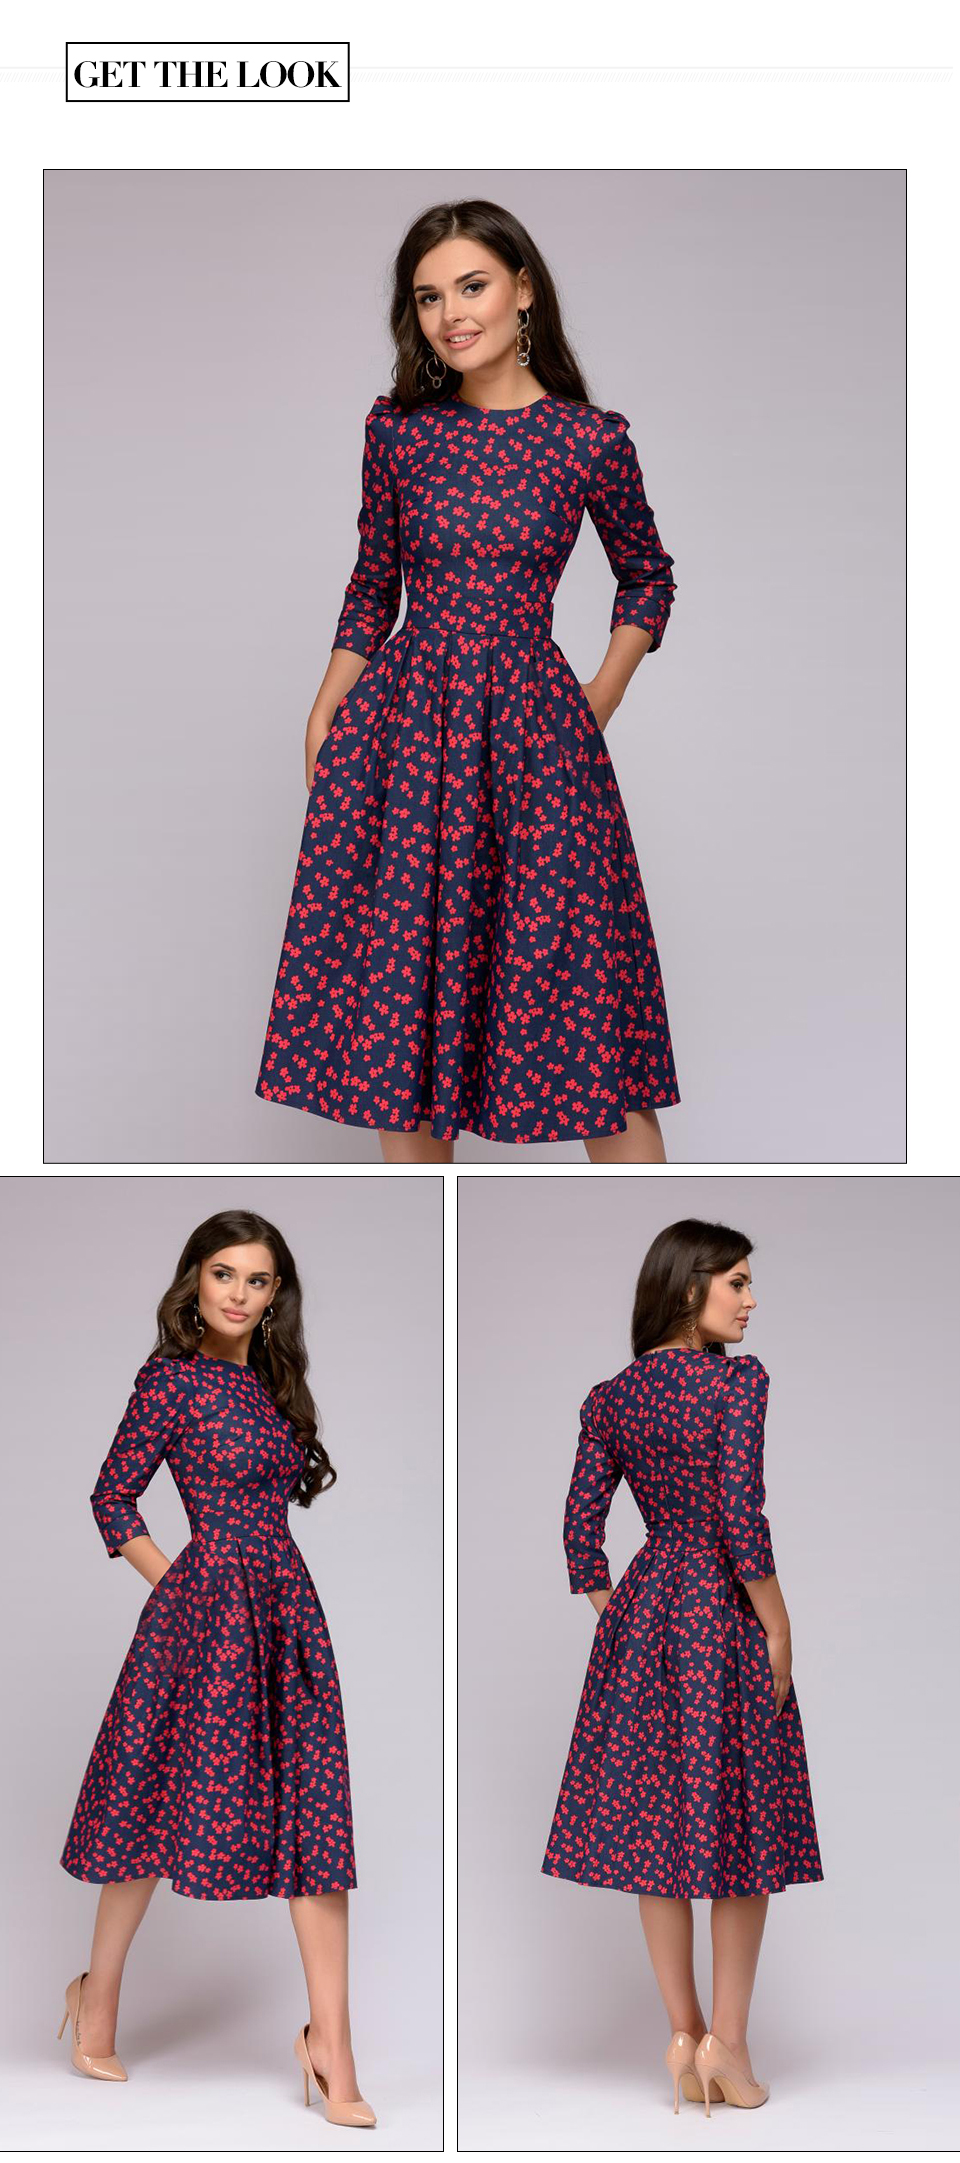 Vintage Three Quarter Sleeve A-line Print Floral Dress